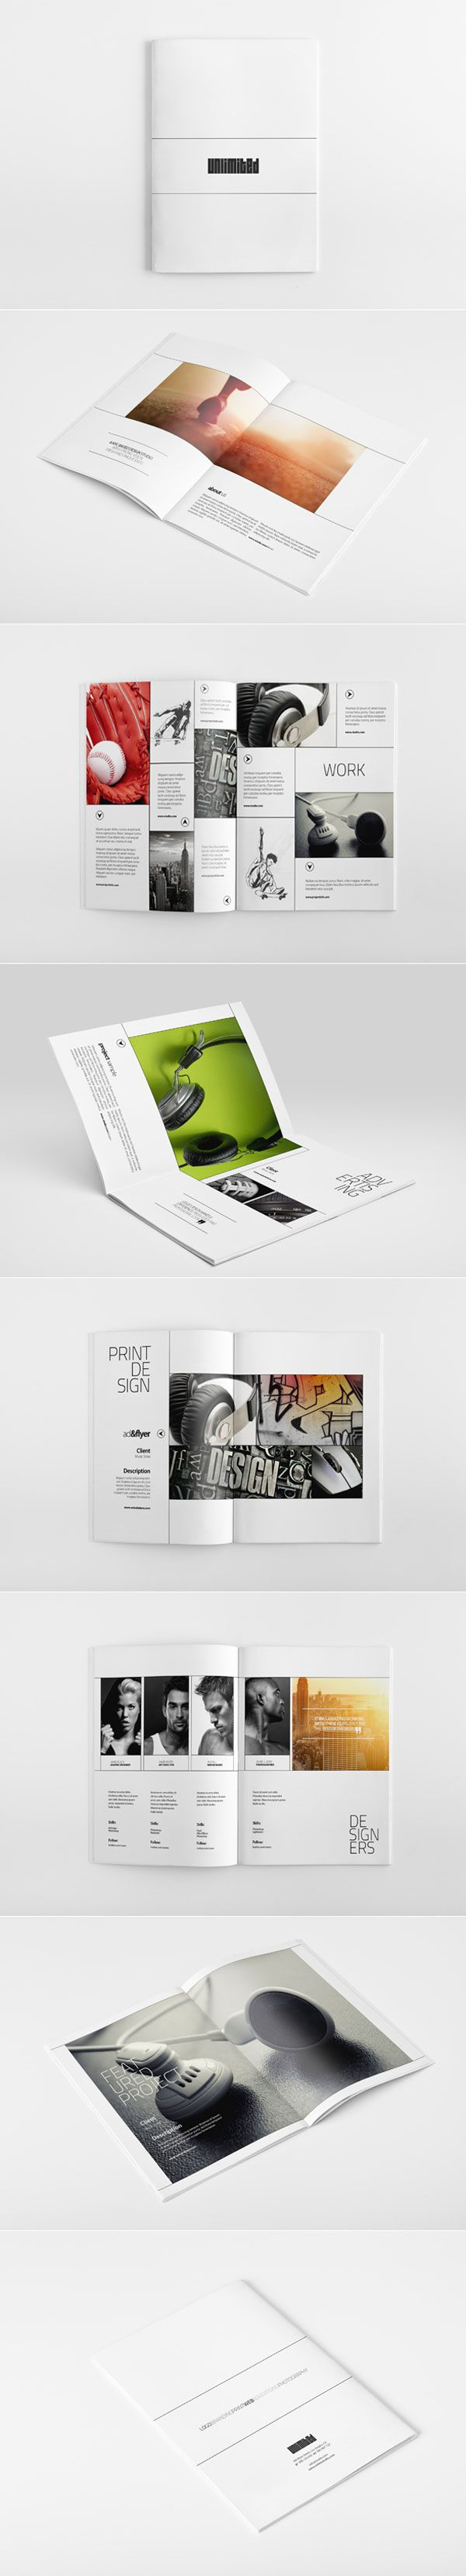 Portfolio-brochure-design-ideas